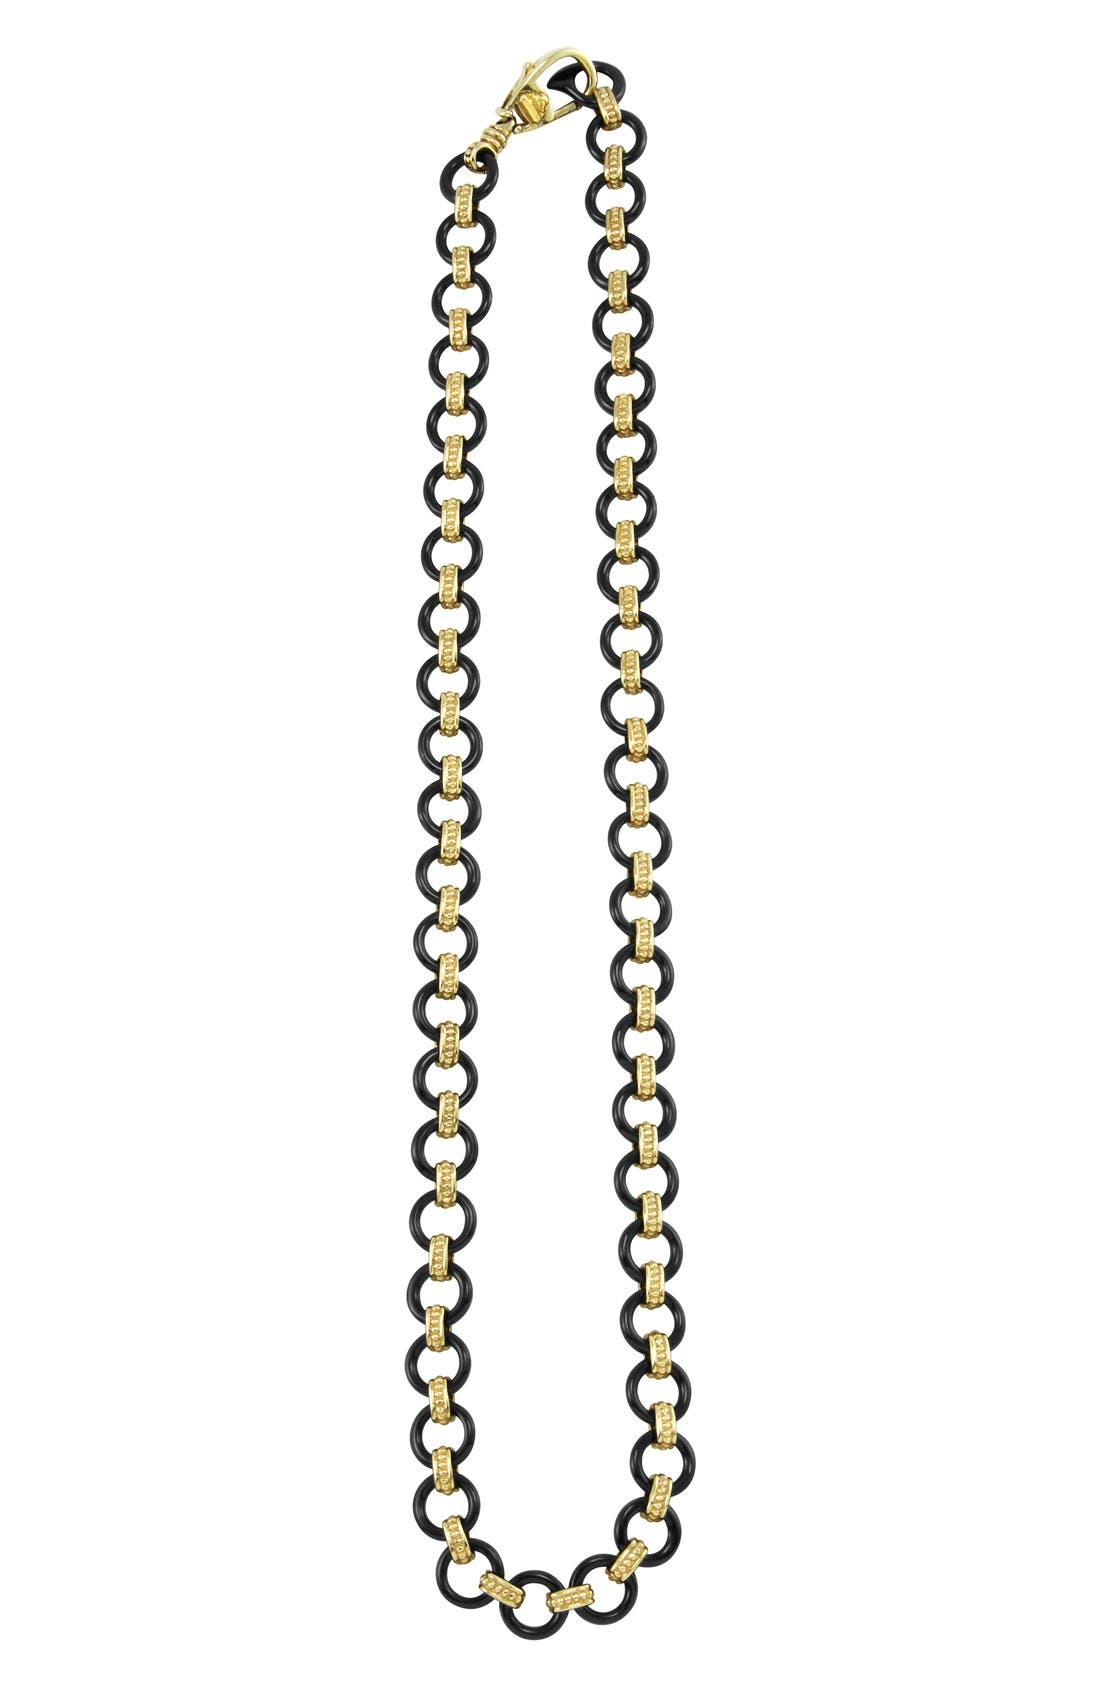 'Caviar Gold' Gold Link Necklace,                             Main thumbnail 1, color,                             Black Agate/ Gold